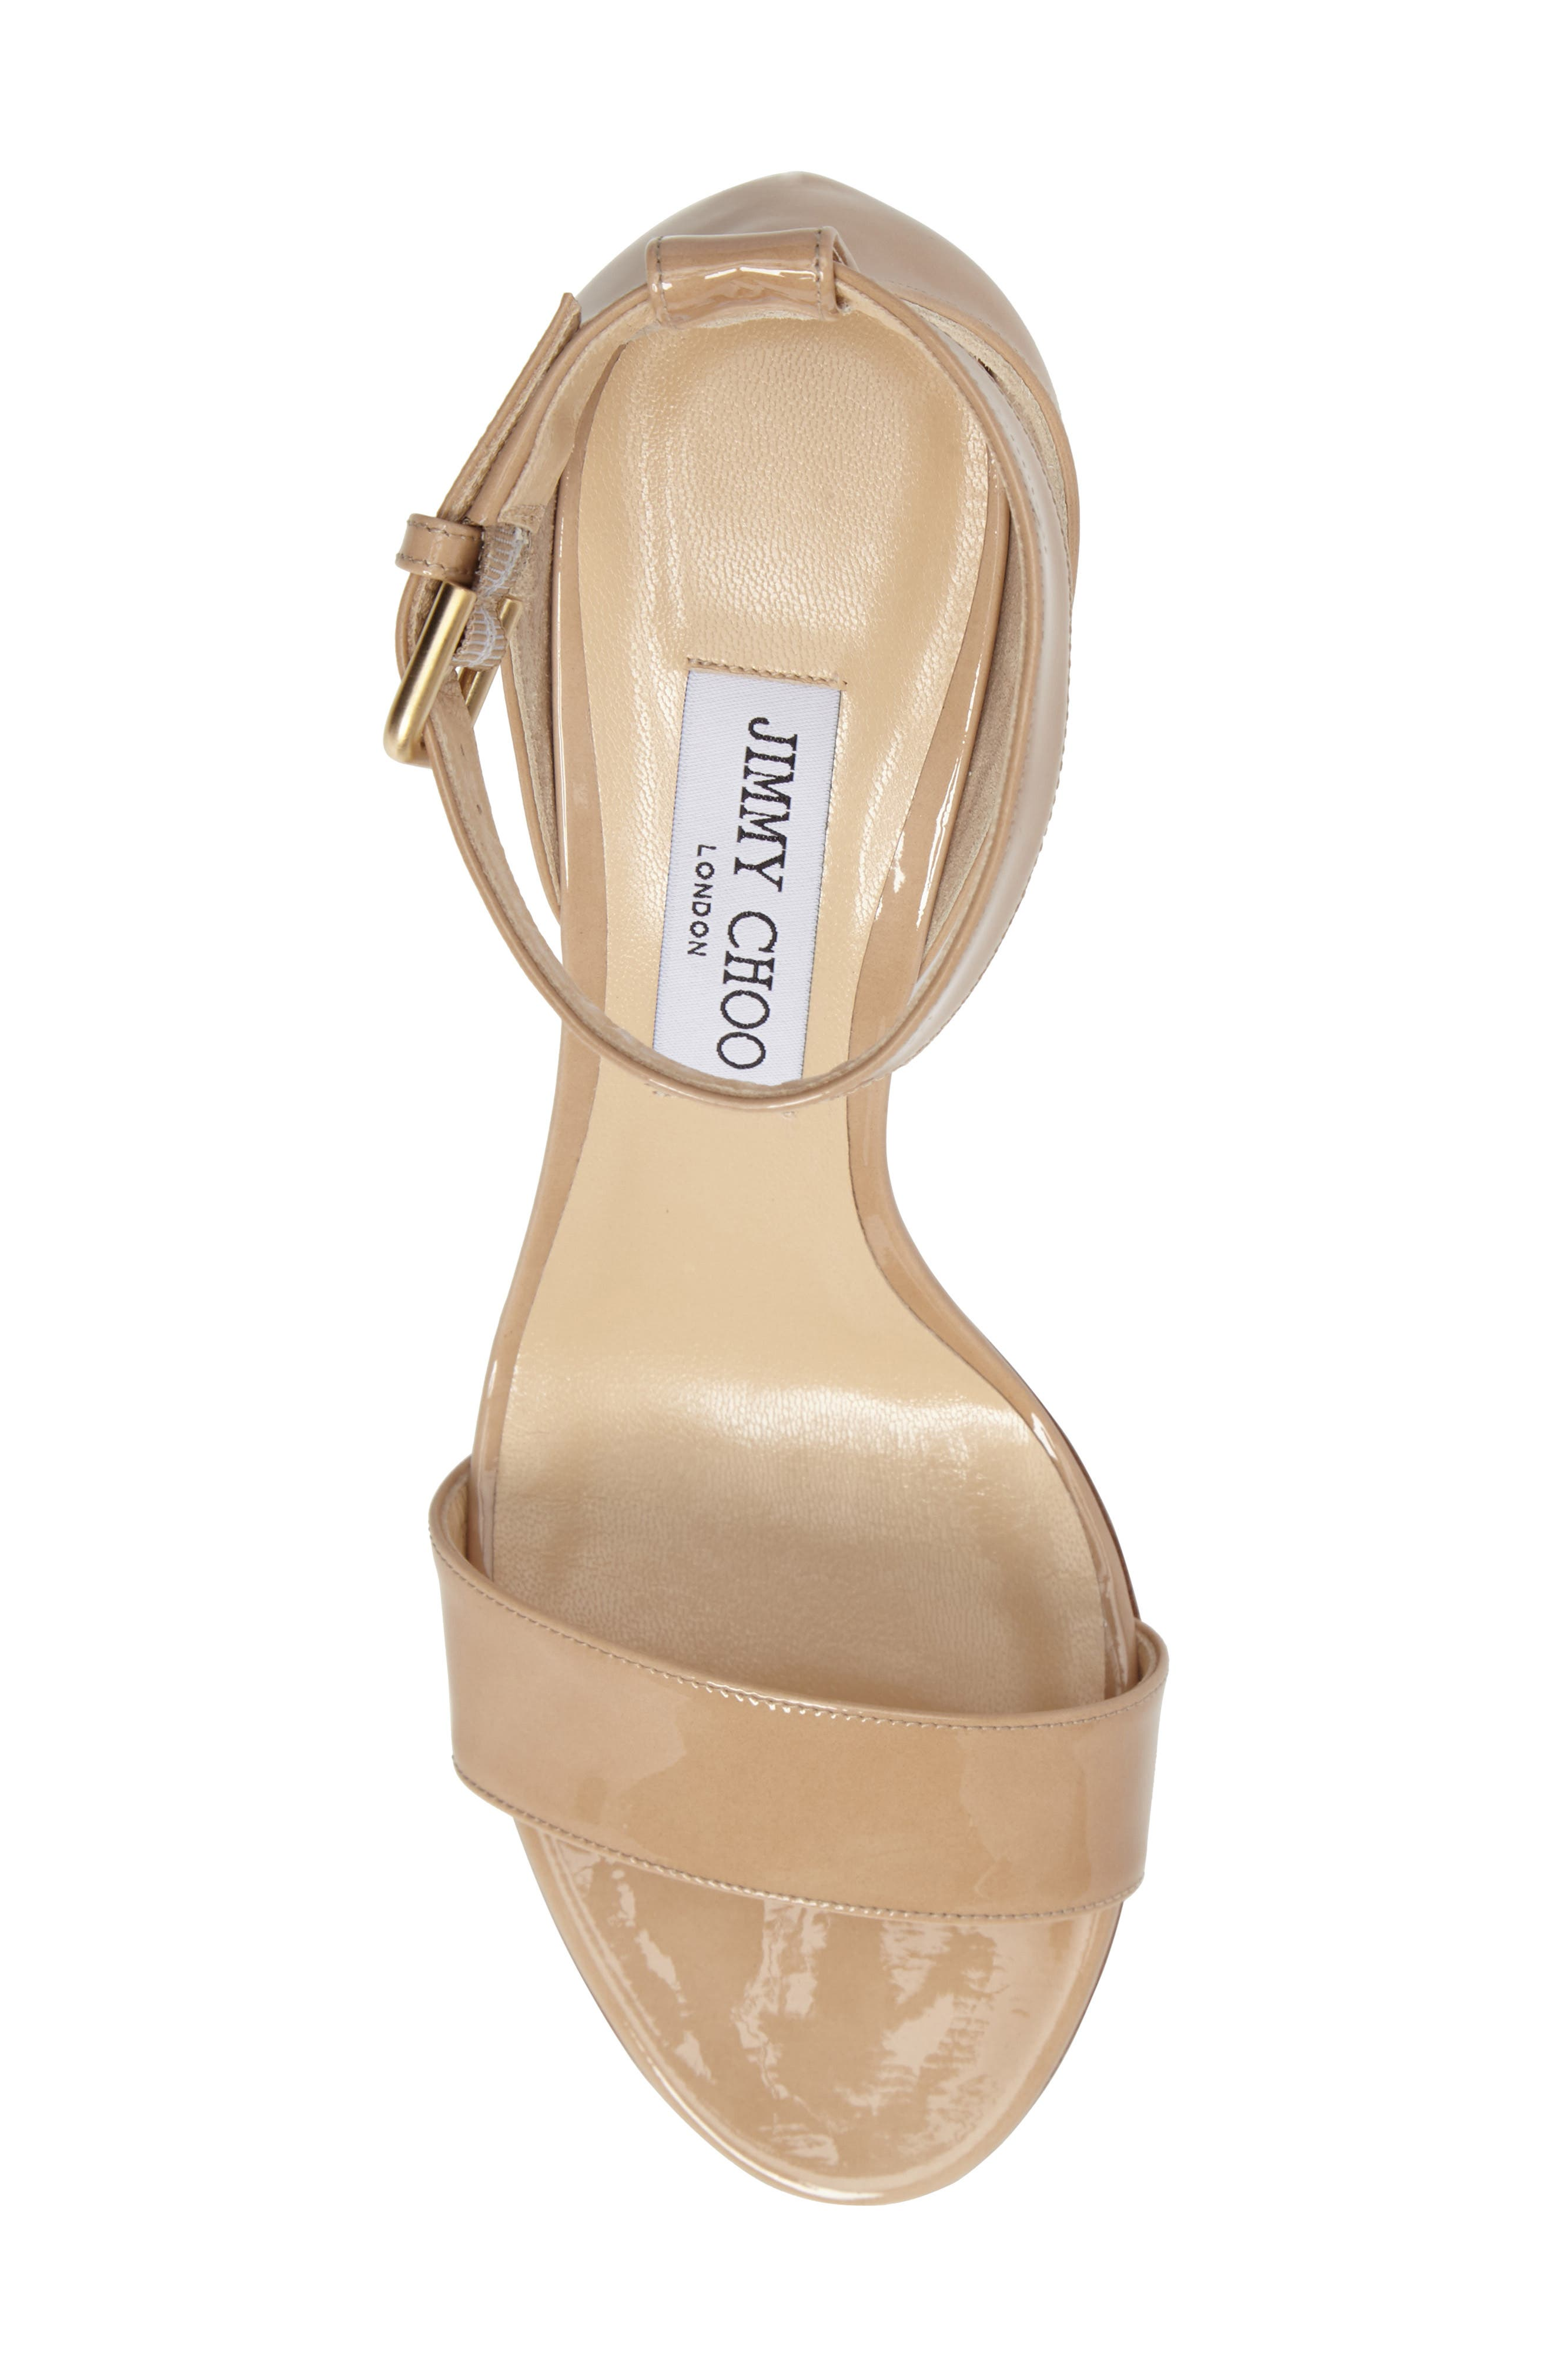 Edina Ankle Strap Sandal,                             Alternate thumbnail 5, color,                             NUDE PATENT